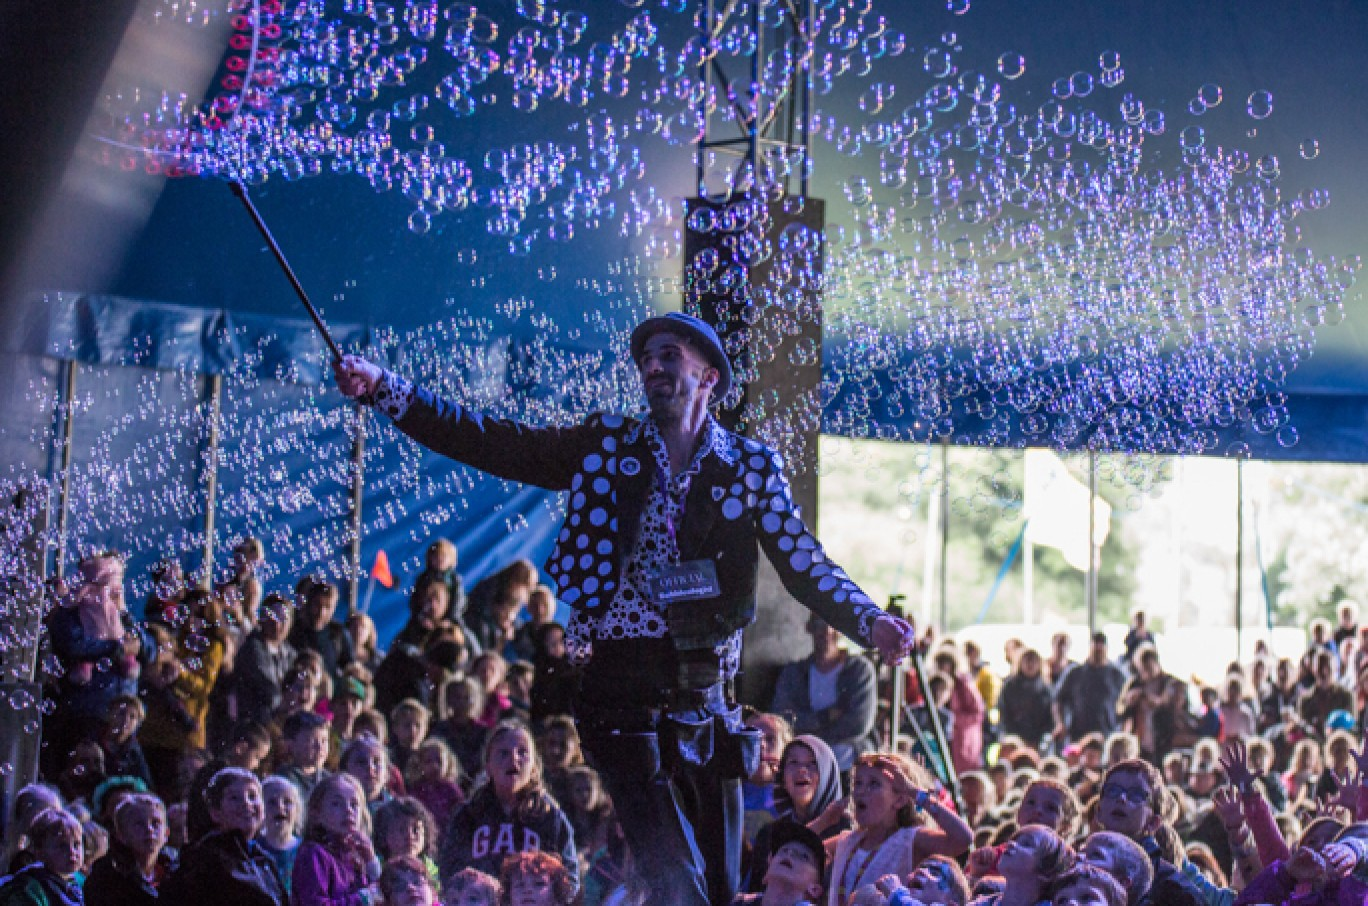 6_10-camp-bestival-friday-67951501584976